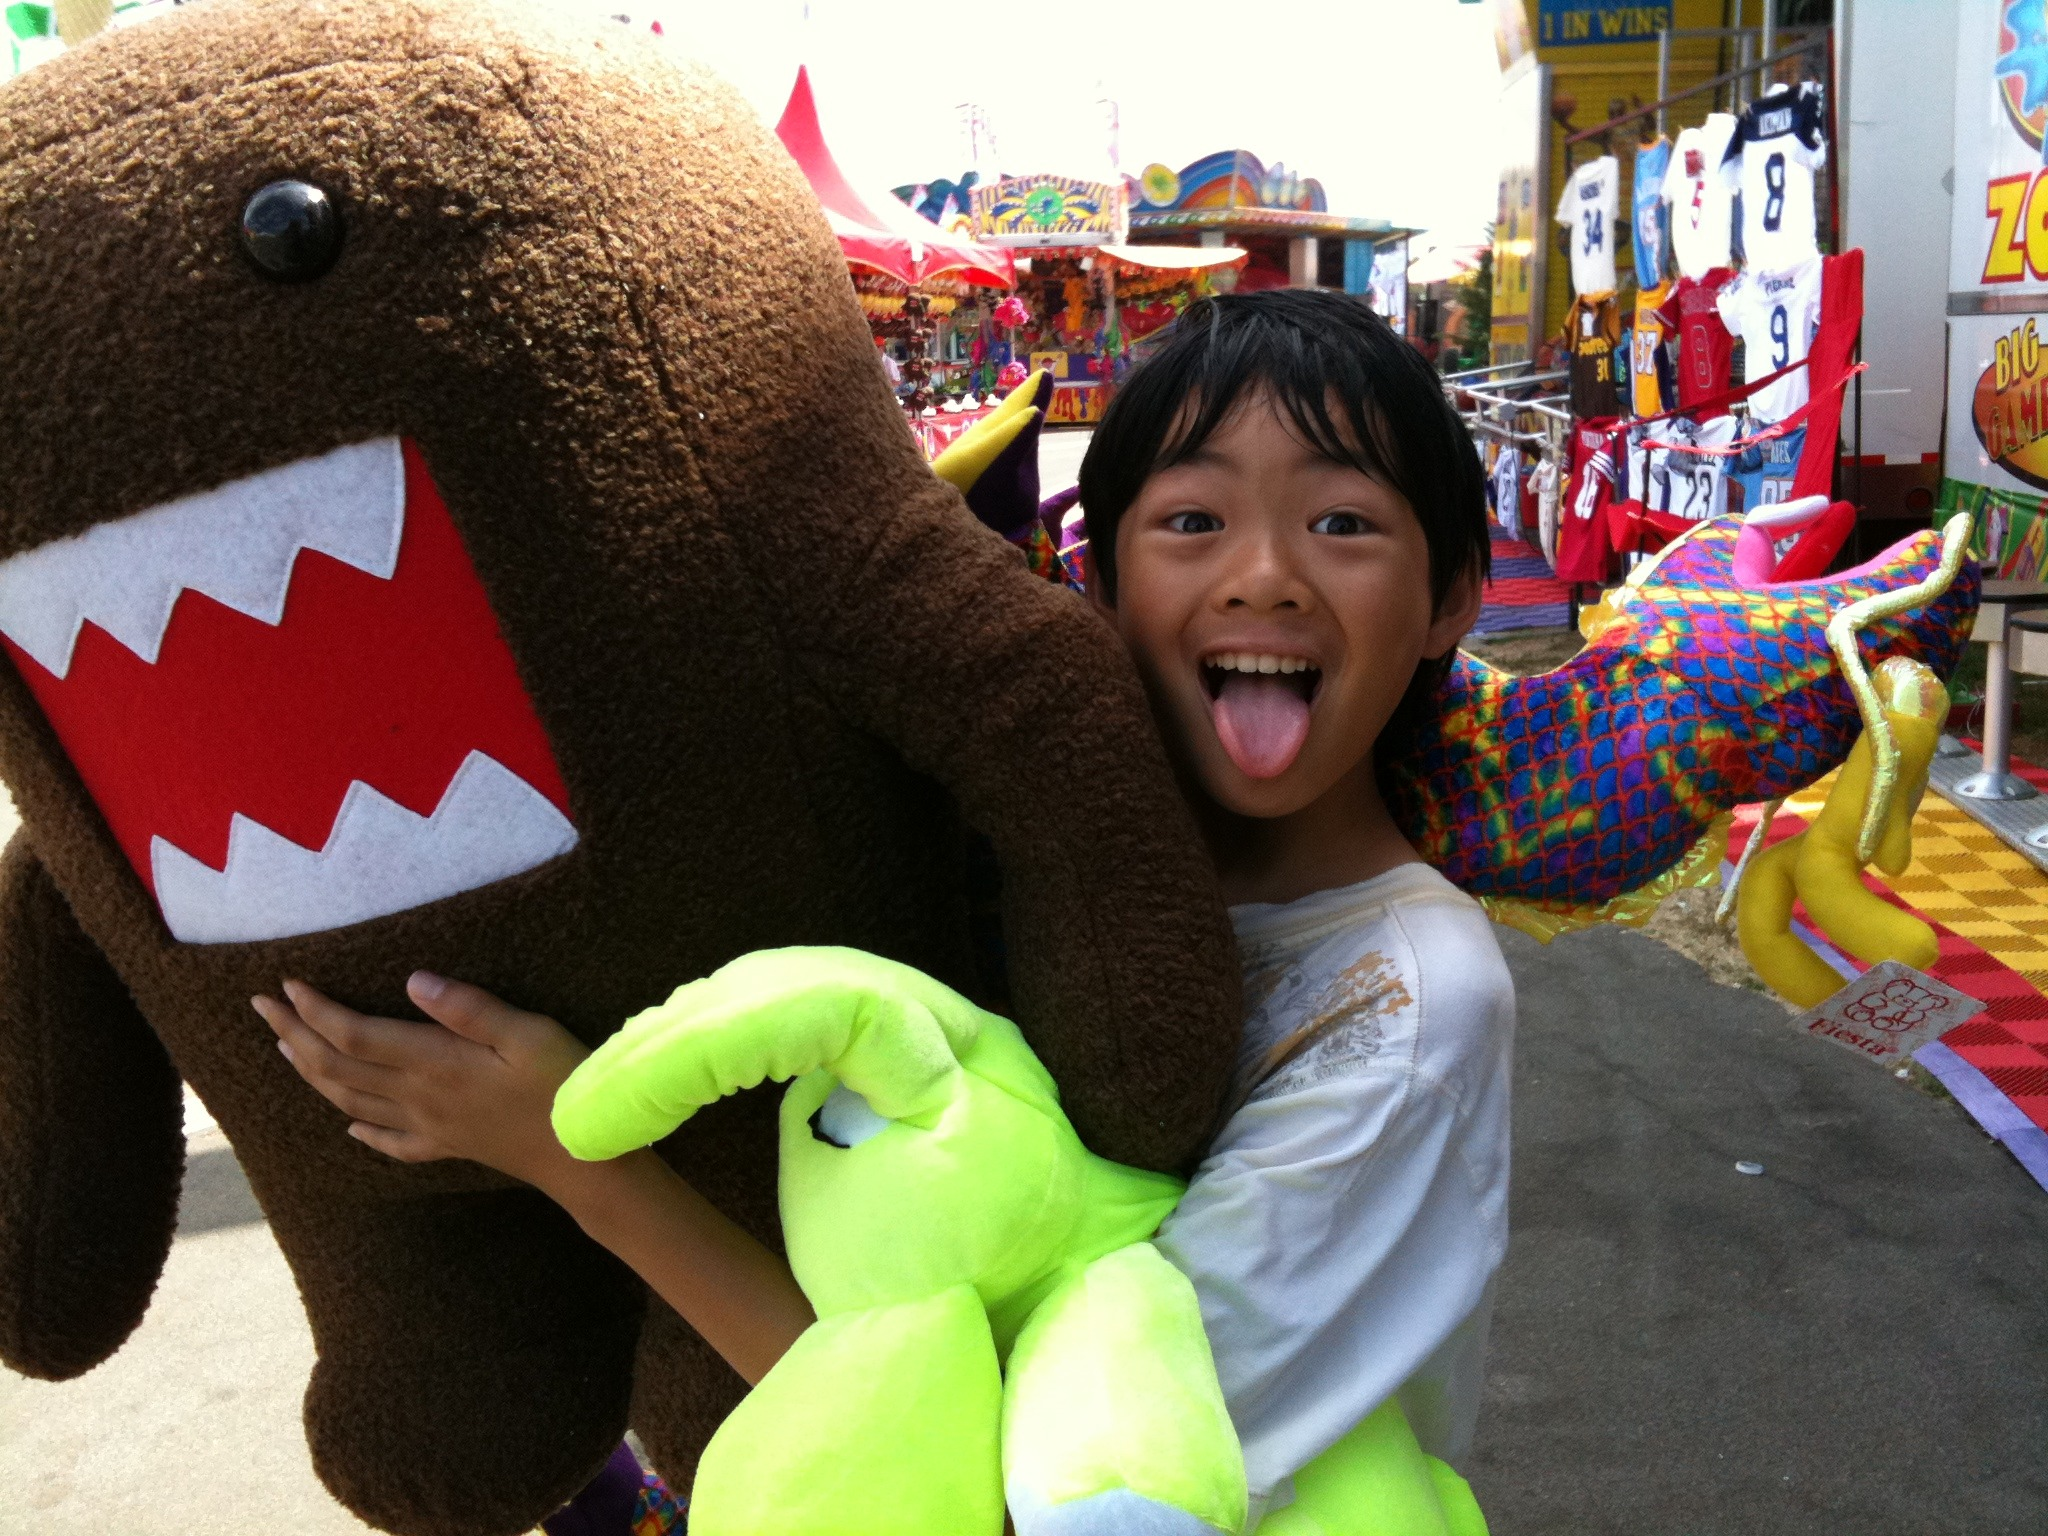 The boy wins a big Domokun at the #ocfair (and other Fair goodness)